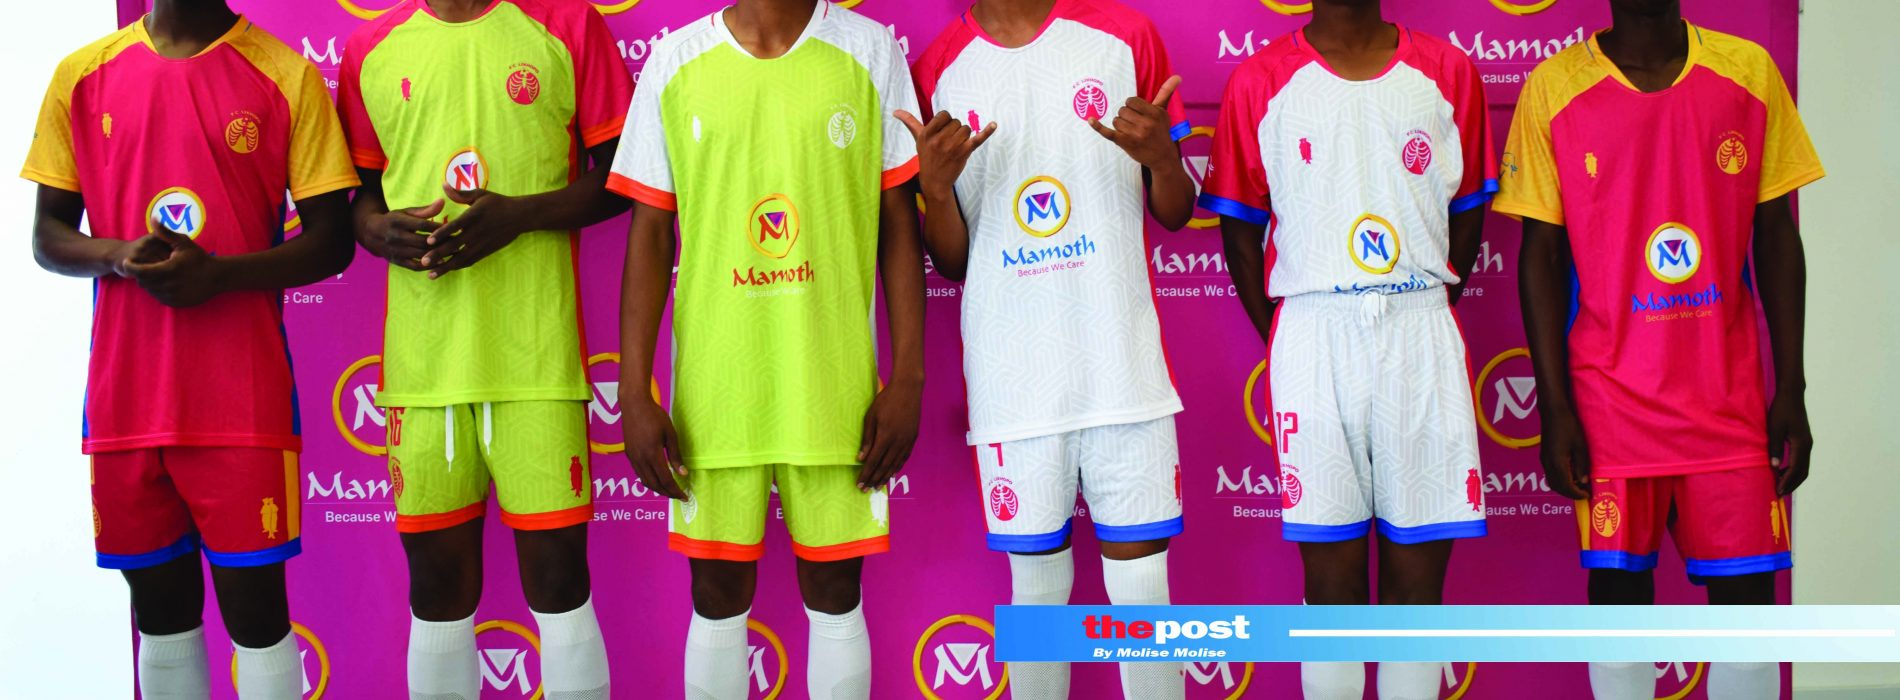 Mammoth unveils Likhopo kit